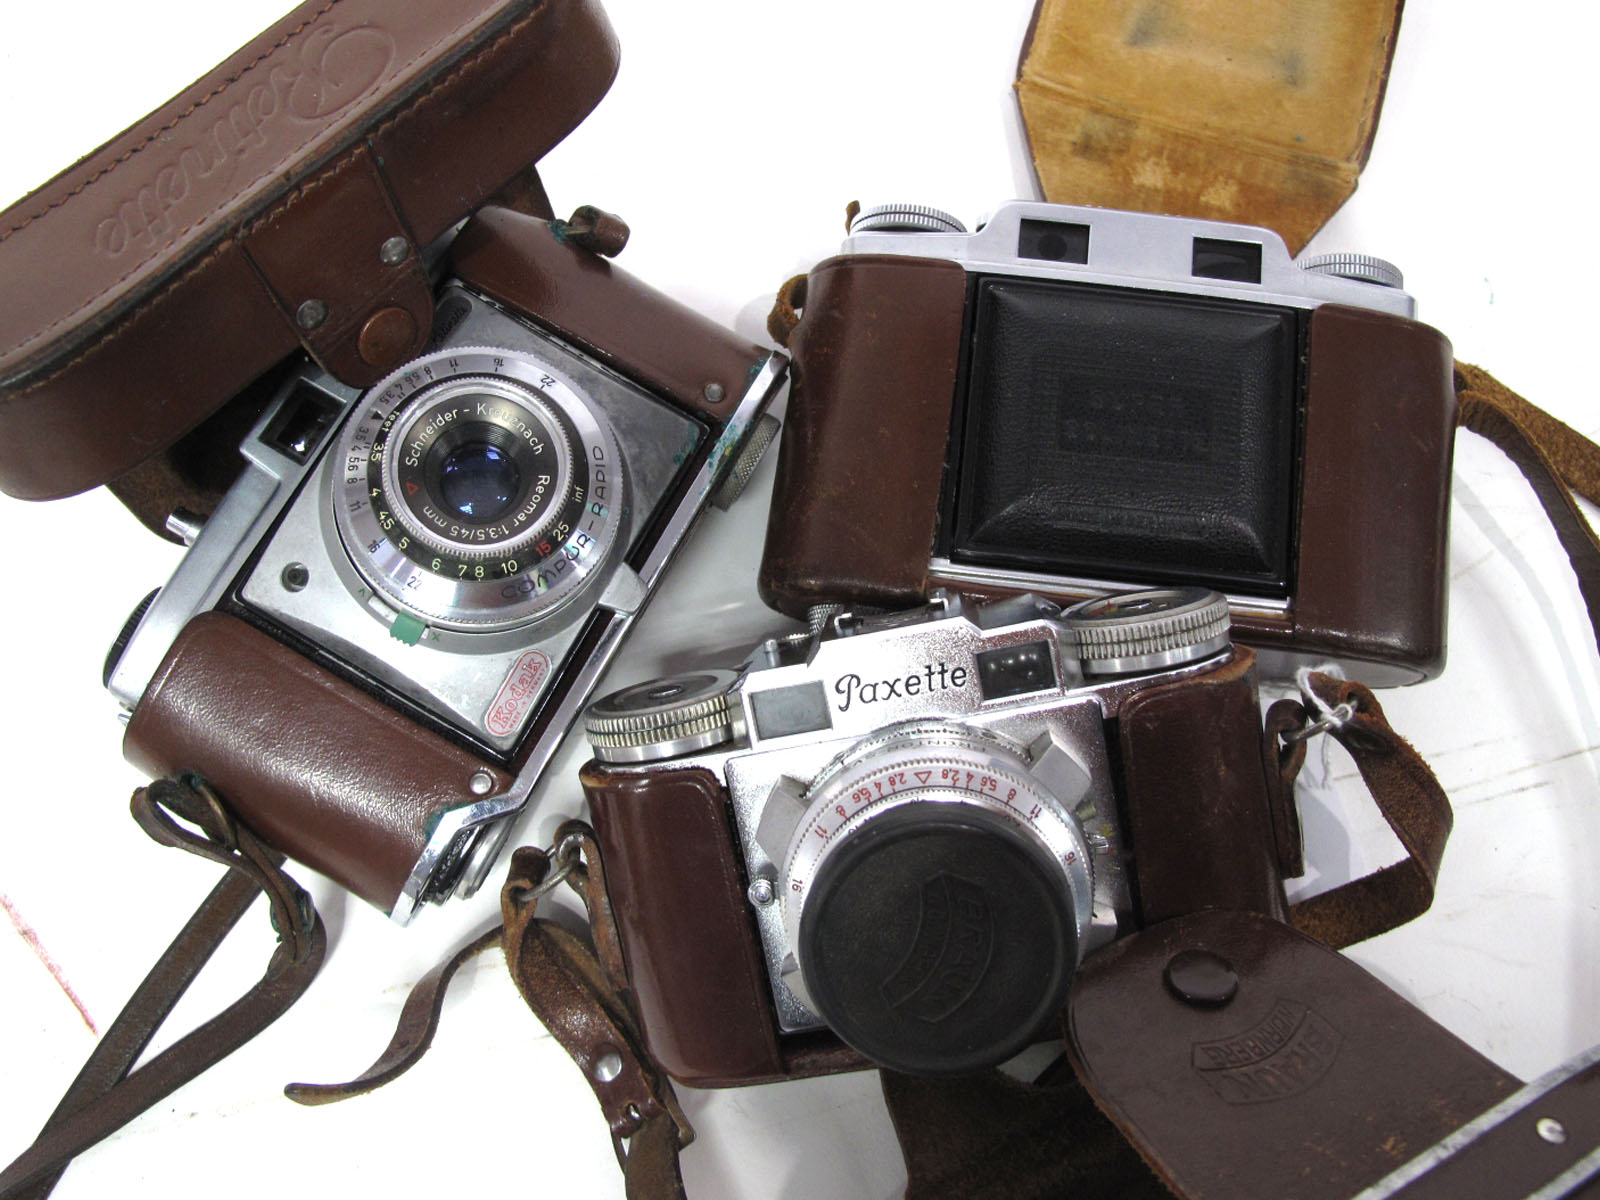 Retinette Camera, with Compur Rapid Lens 45mm, Paxette Camera with Stable - Kata 45mm lens, Super